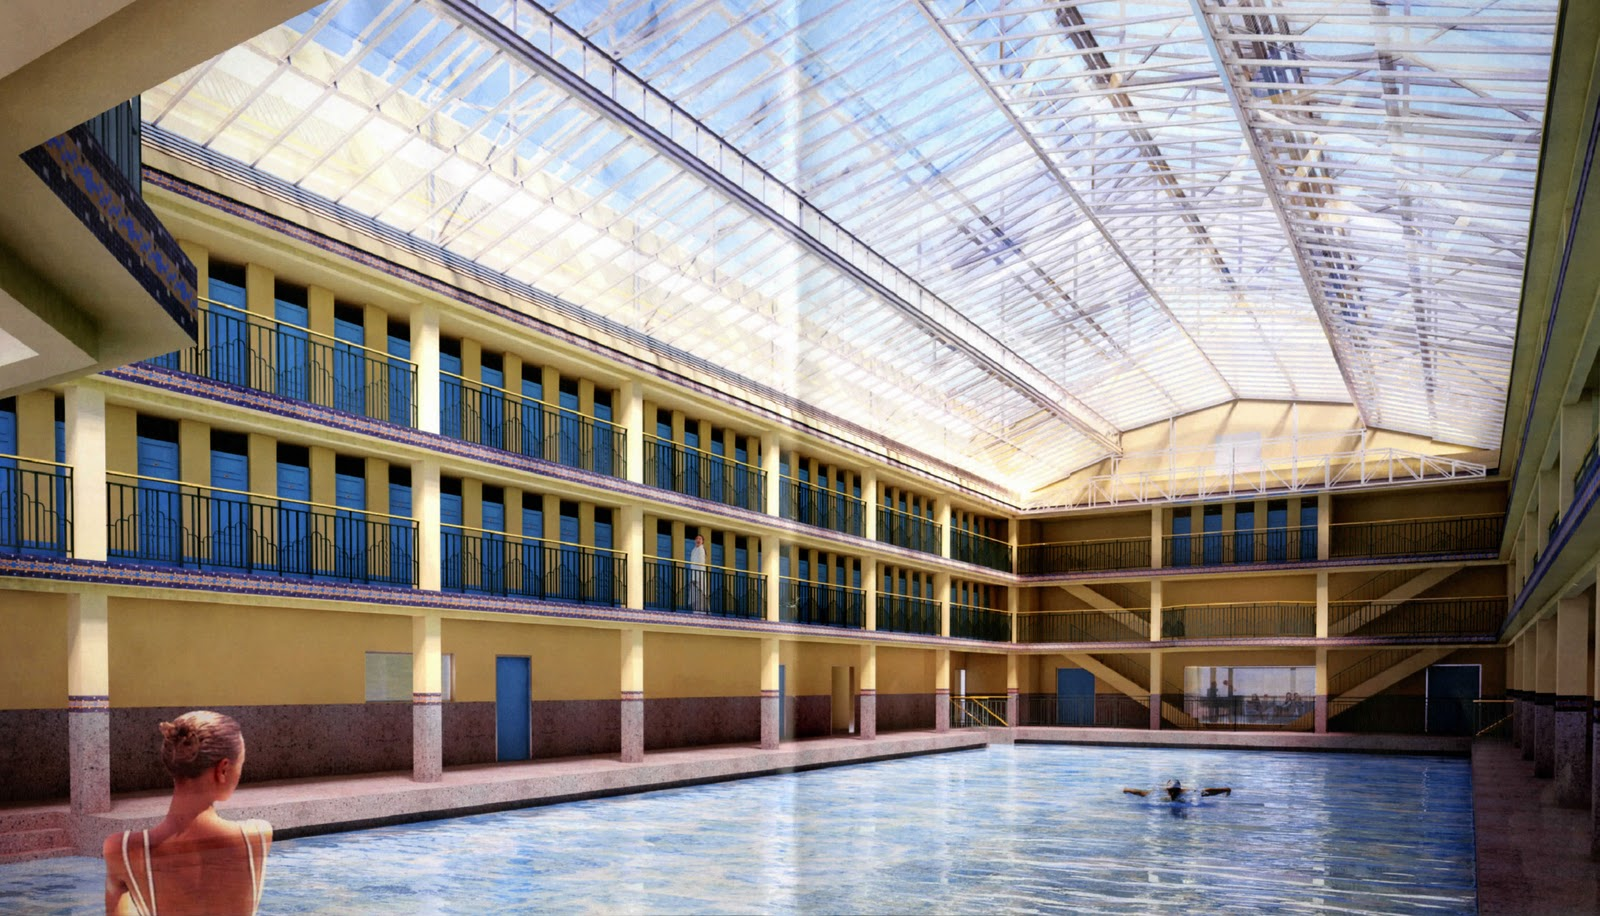 La piscine molitor one quality the finest for Piscine molitor